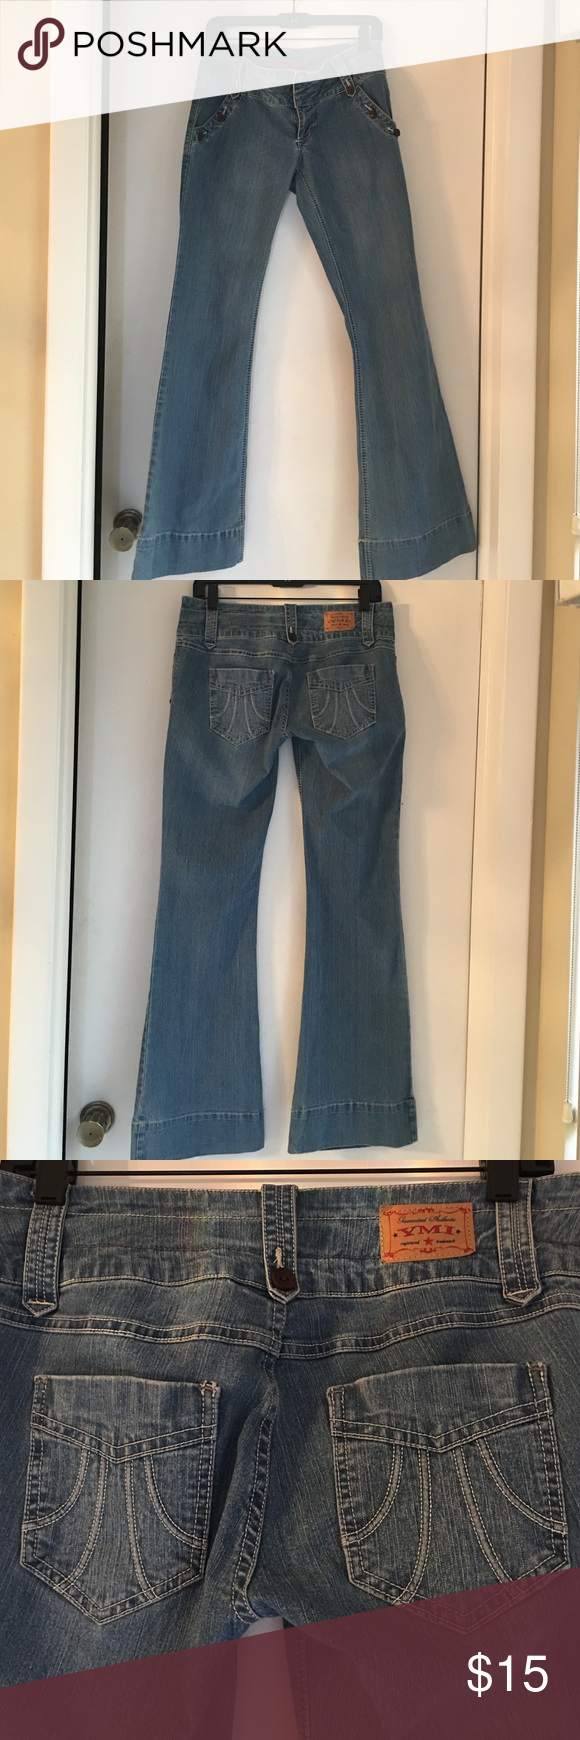 YMI Jeans size 7 Never worn jeans size 7 super comfortable very flattering YMI Jeans Flare & Wide Leg